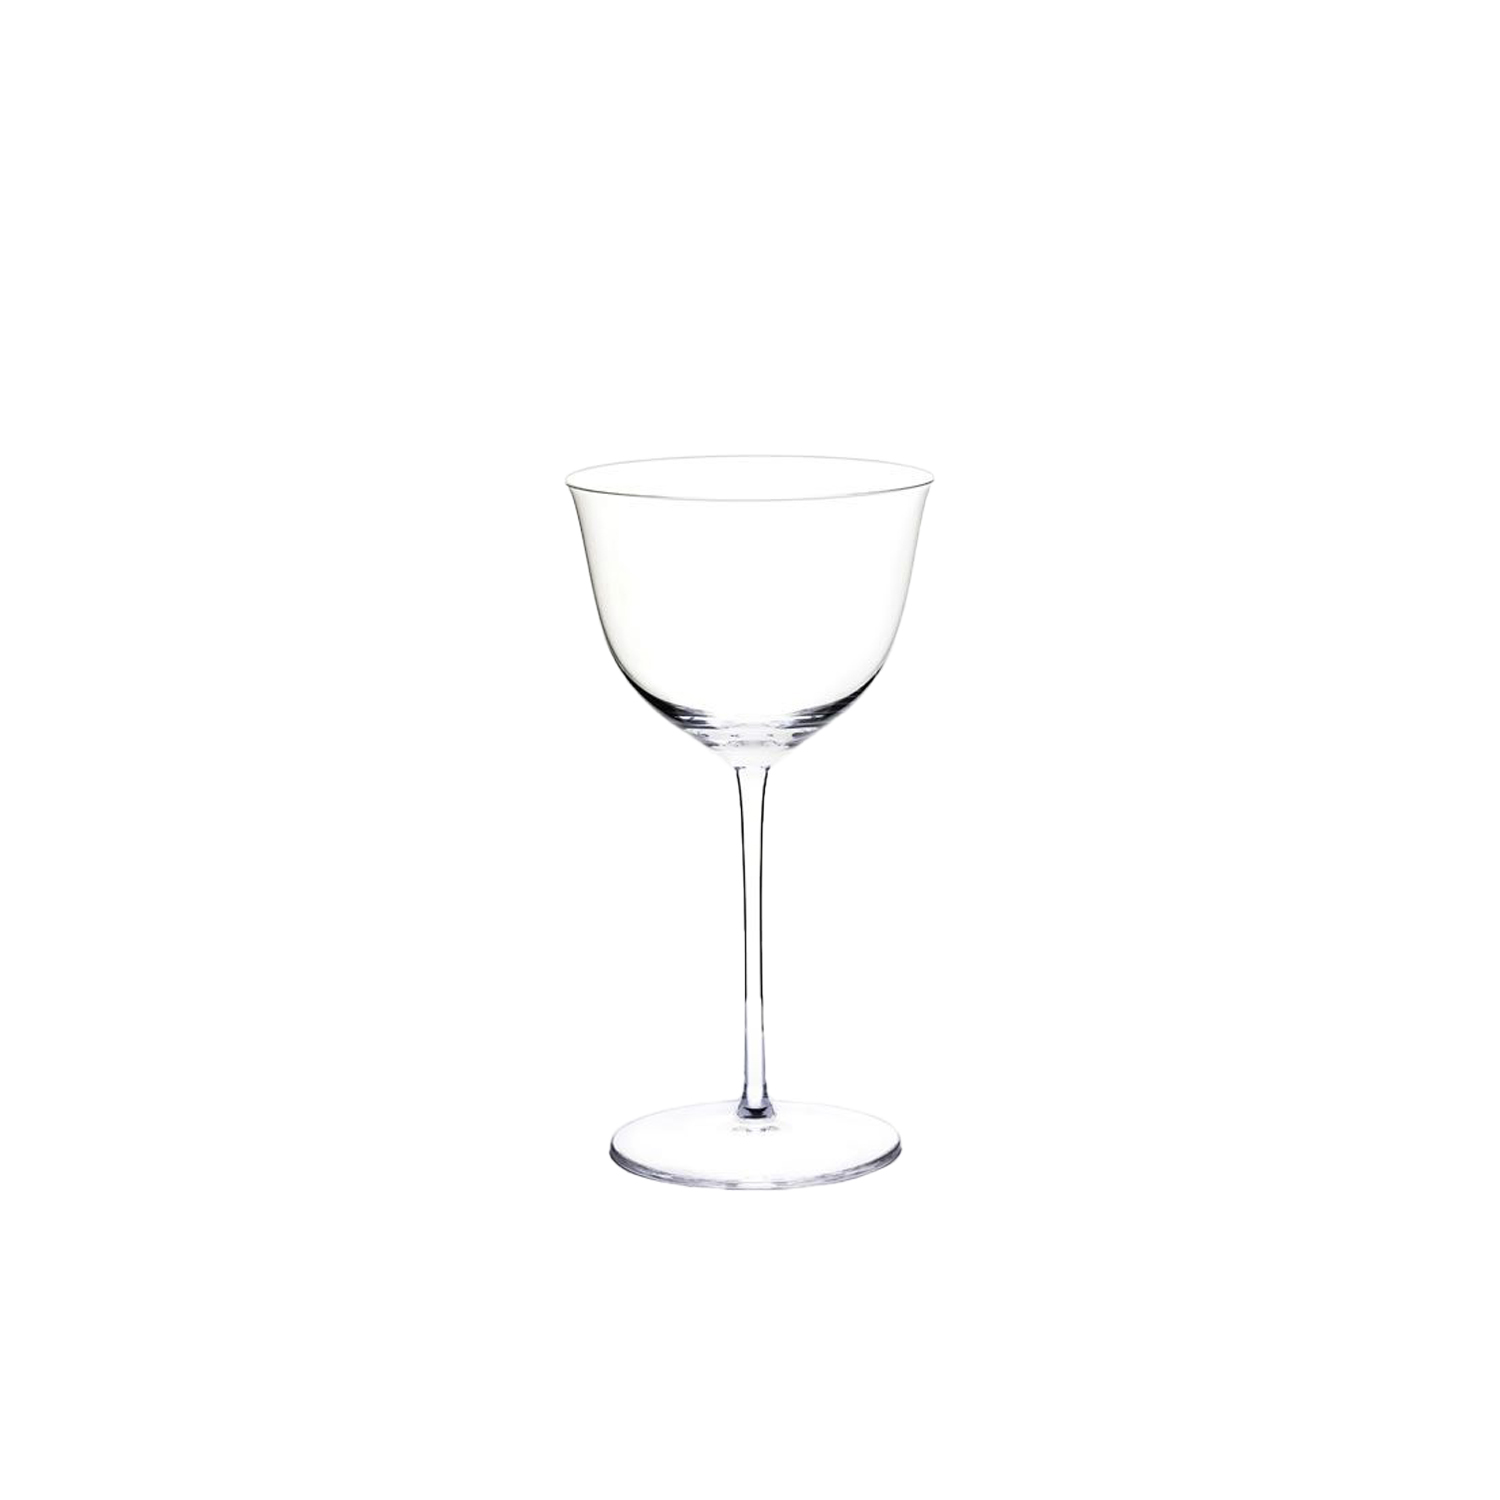 Drinking Set No.238 Wine Glass I - Set of 6 - The perfectly flowing contours of these original Hoffmann shapes make this muslin glass service a classic. Josef Hoffmann designed the elegantly balanced glasses for Lobmeyr as early as 1917. The material, extremely delicate muslin glass, hand-blown in wooden shapes, gives the series its elegance.  | Matter of Stuff